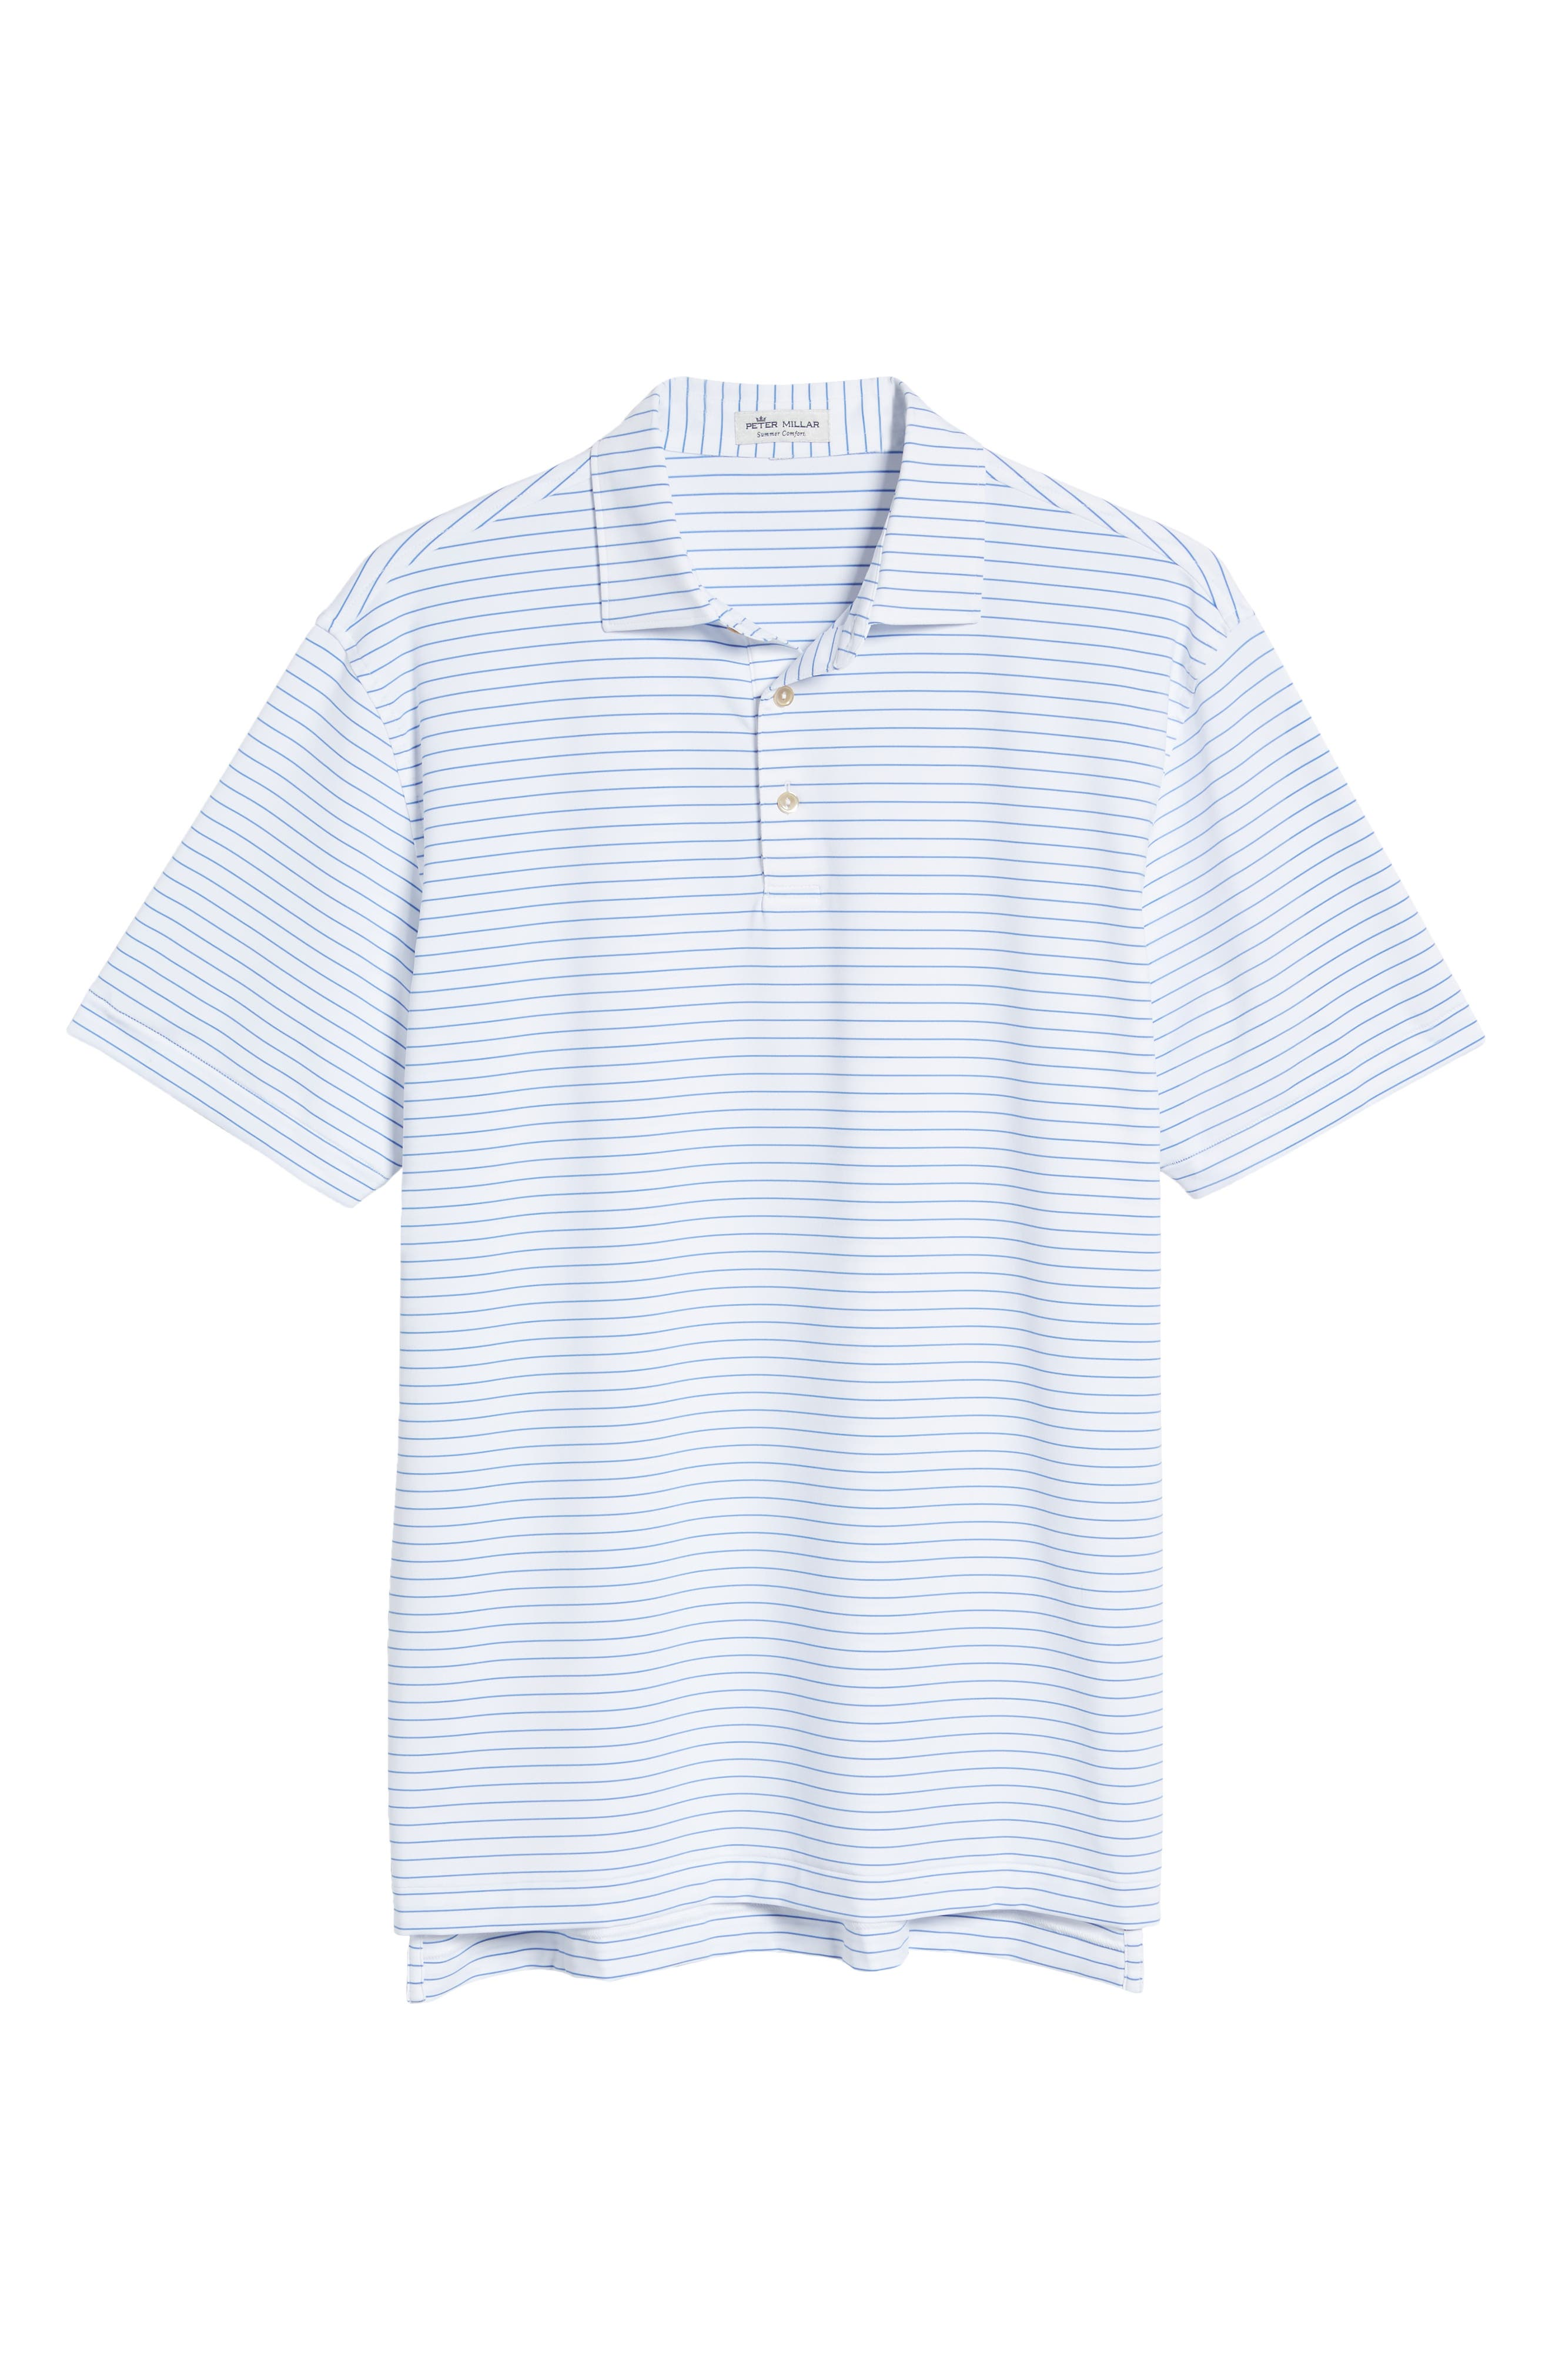 Stretchy, moisture-wicking fabric keeps up with you all day in a comfortably cut polo that offers added sun protection and helps keep odors at bay. Style Name: Peter Millar Crafty Stripe Short Sleeve Performance Polo. Style Number: 6053358. Available in stores.